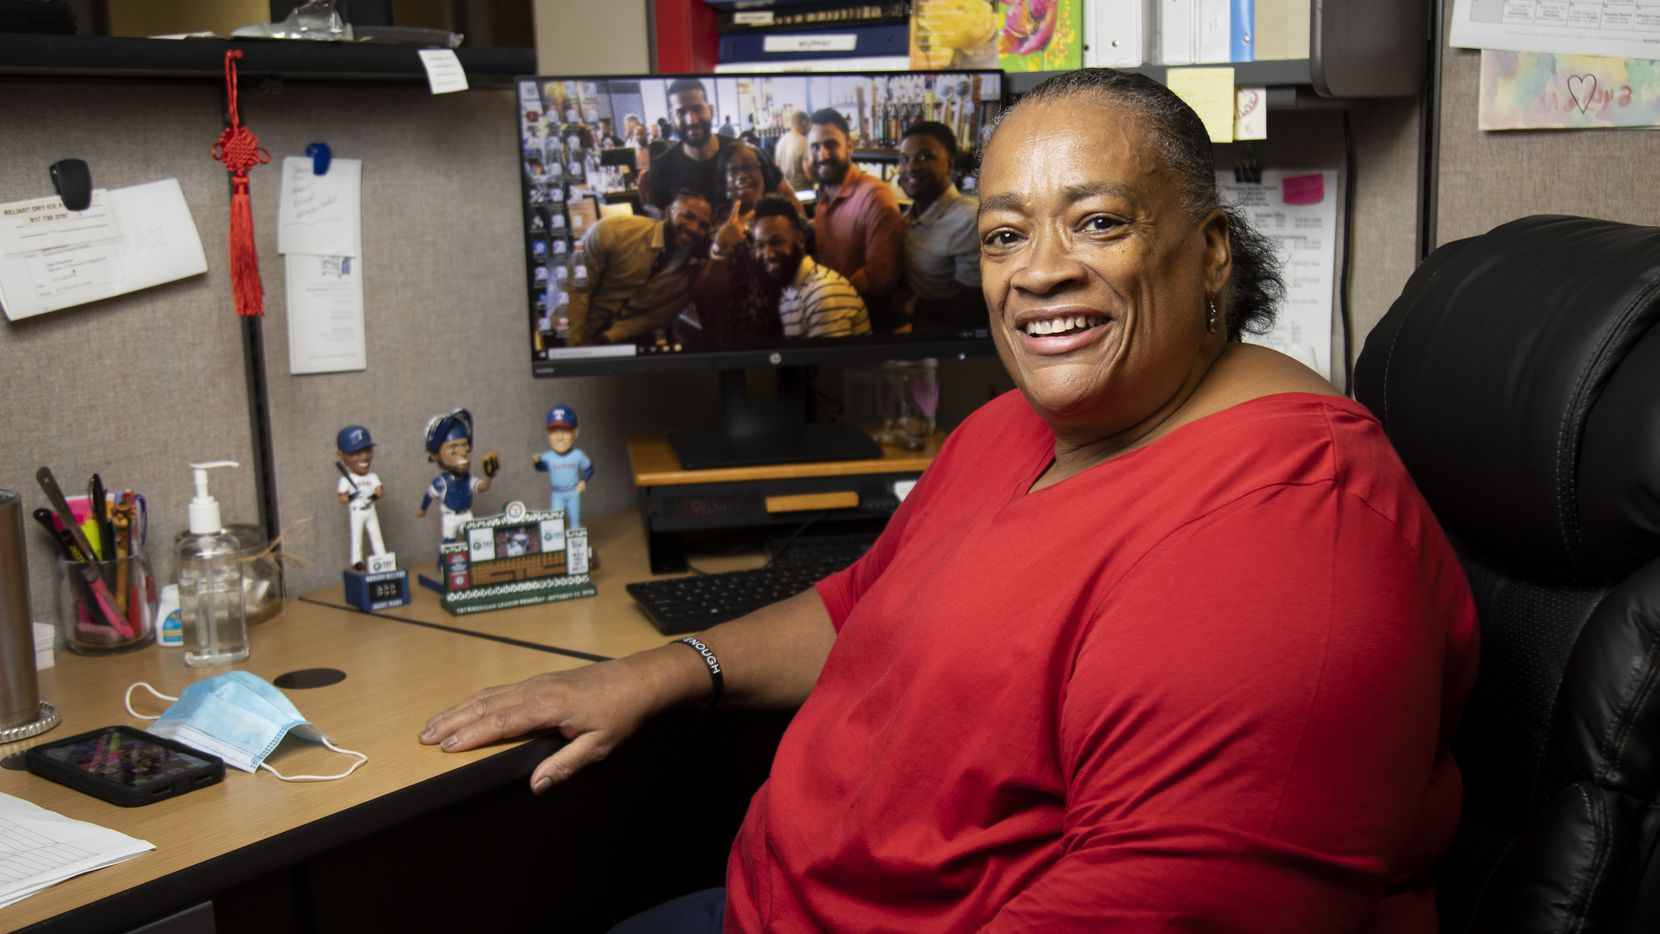 Dawn Shepard, Rangers fan and Broadway Baptist Church's community center director, poses for a photo in her office on July 30, 2020, in Fort Worth. Shepard has various Rangers figures on her desk and a photo of her with players during last year's Uncork for a Cause as her computer background.